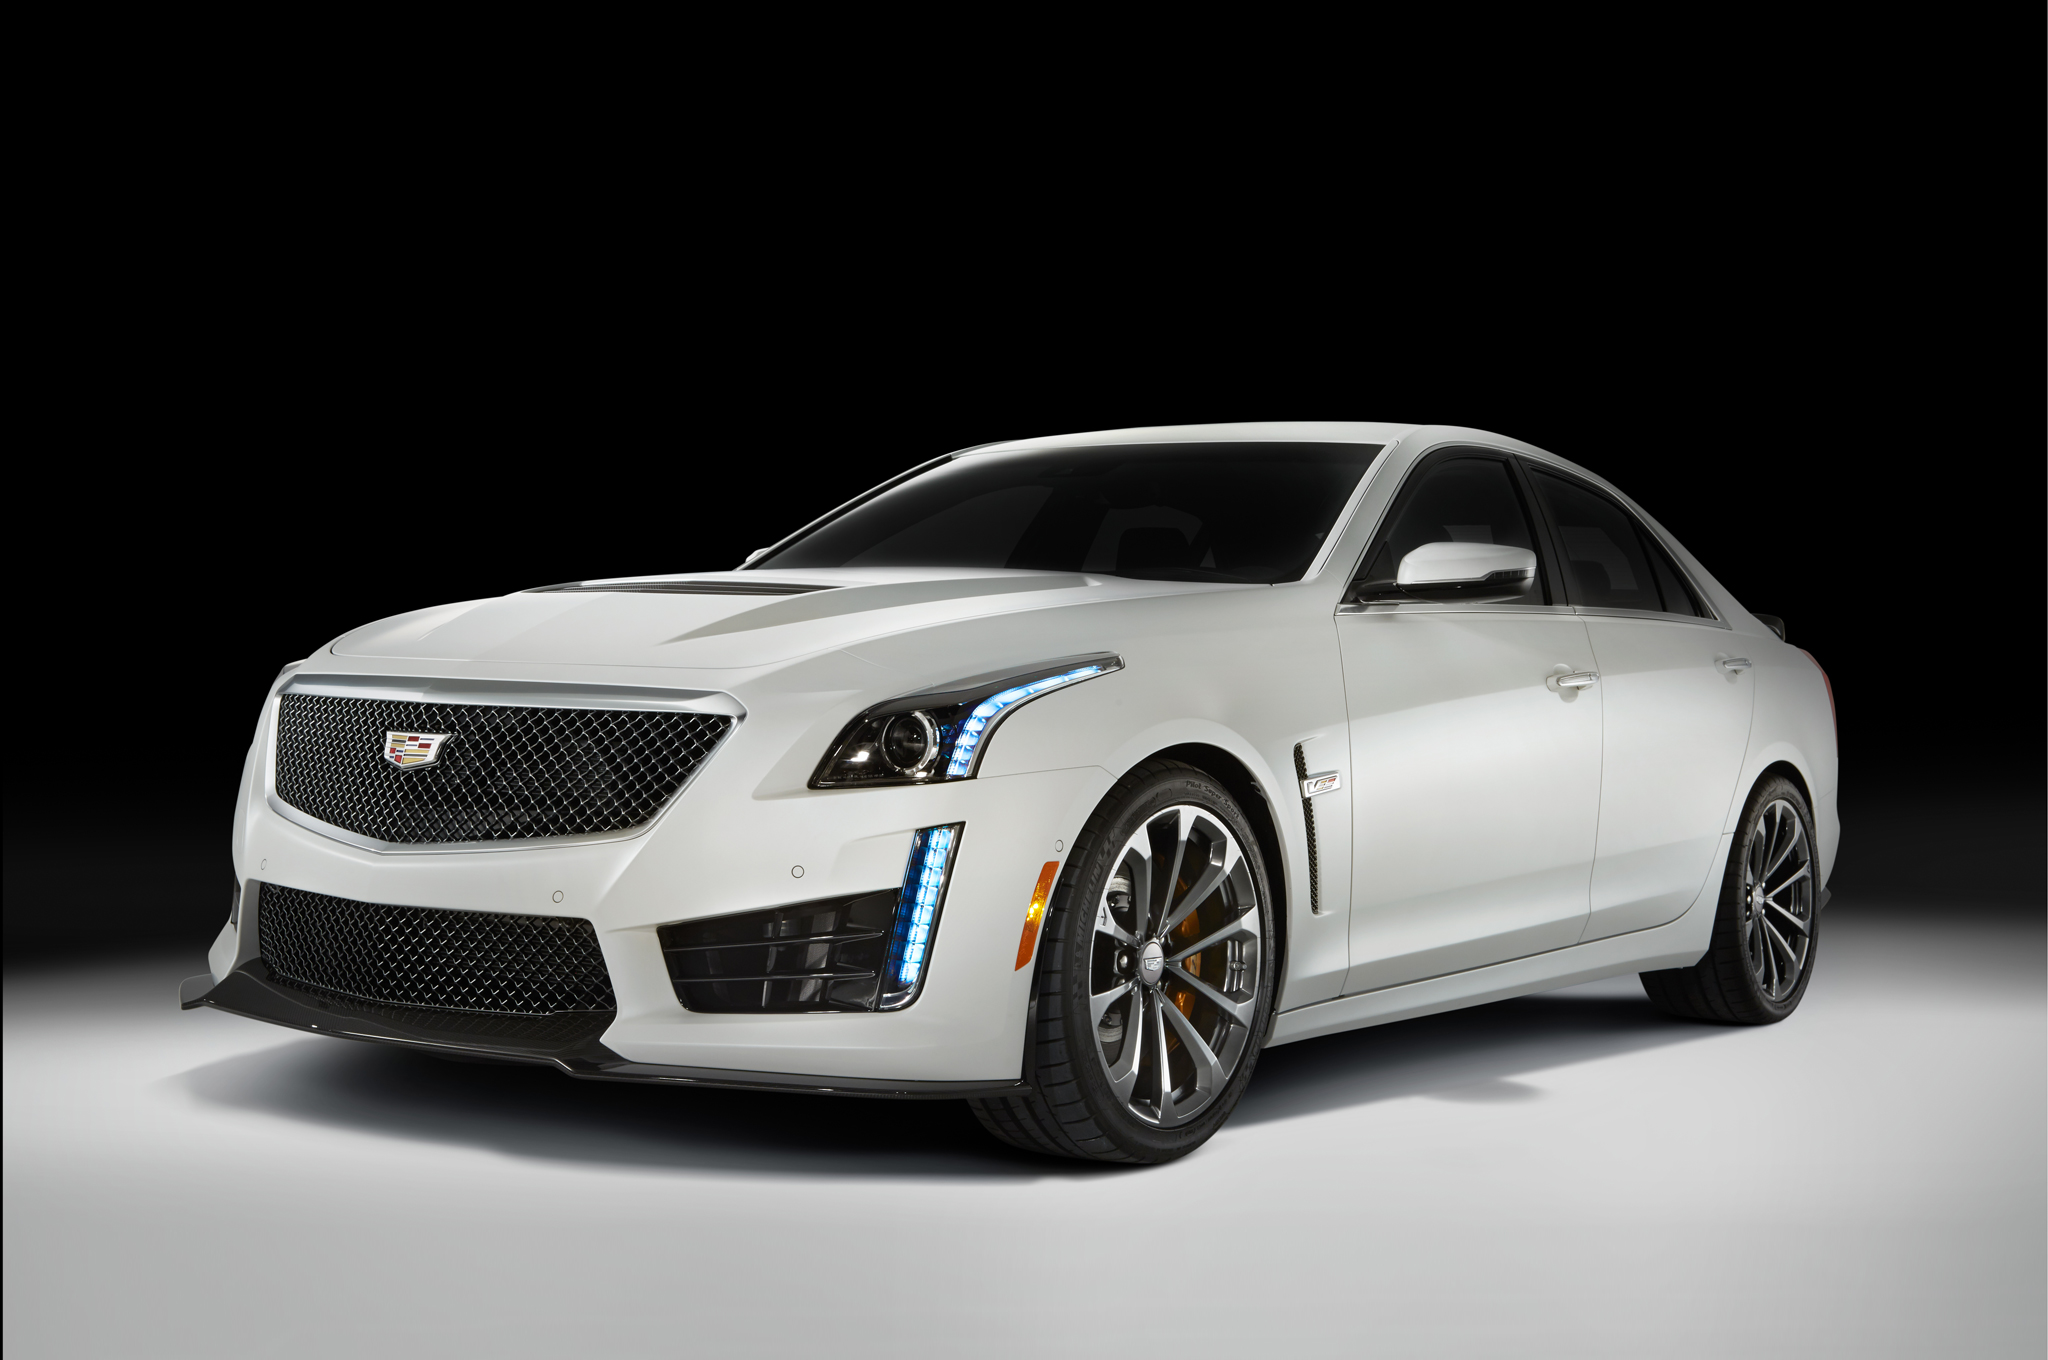 2016 Cadillac Cts V First Look Motor Trend Hot Rod Network